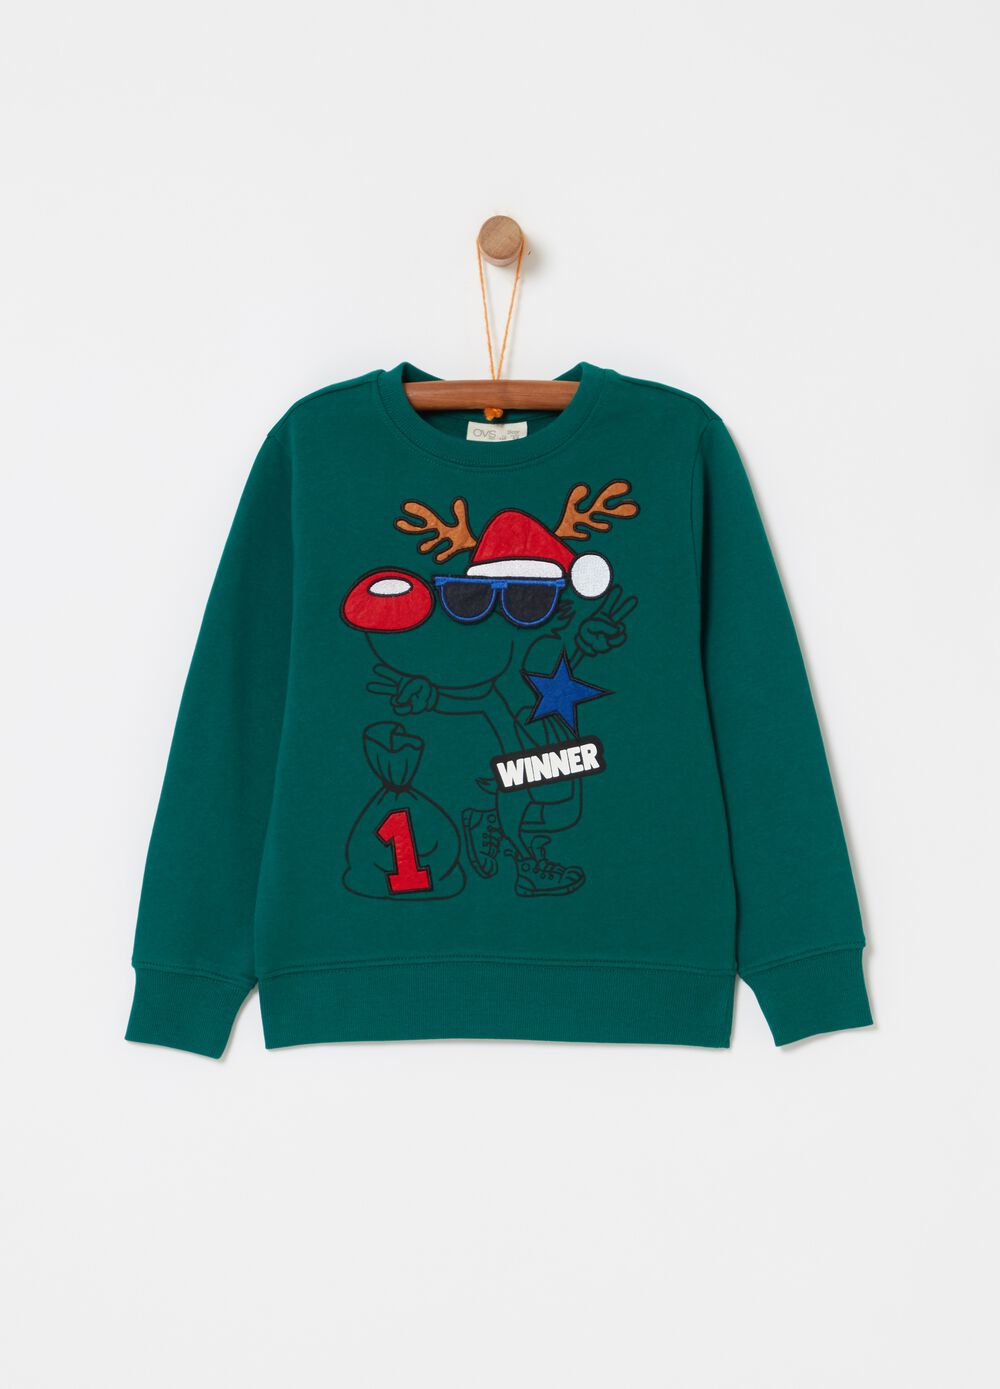 100% cotton sweatshirt with reindeer print